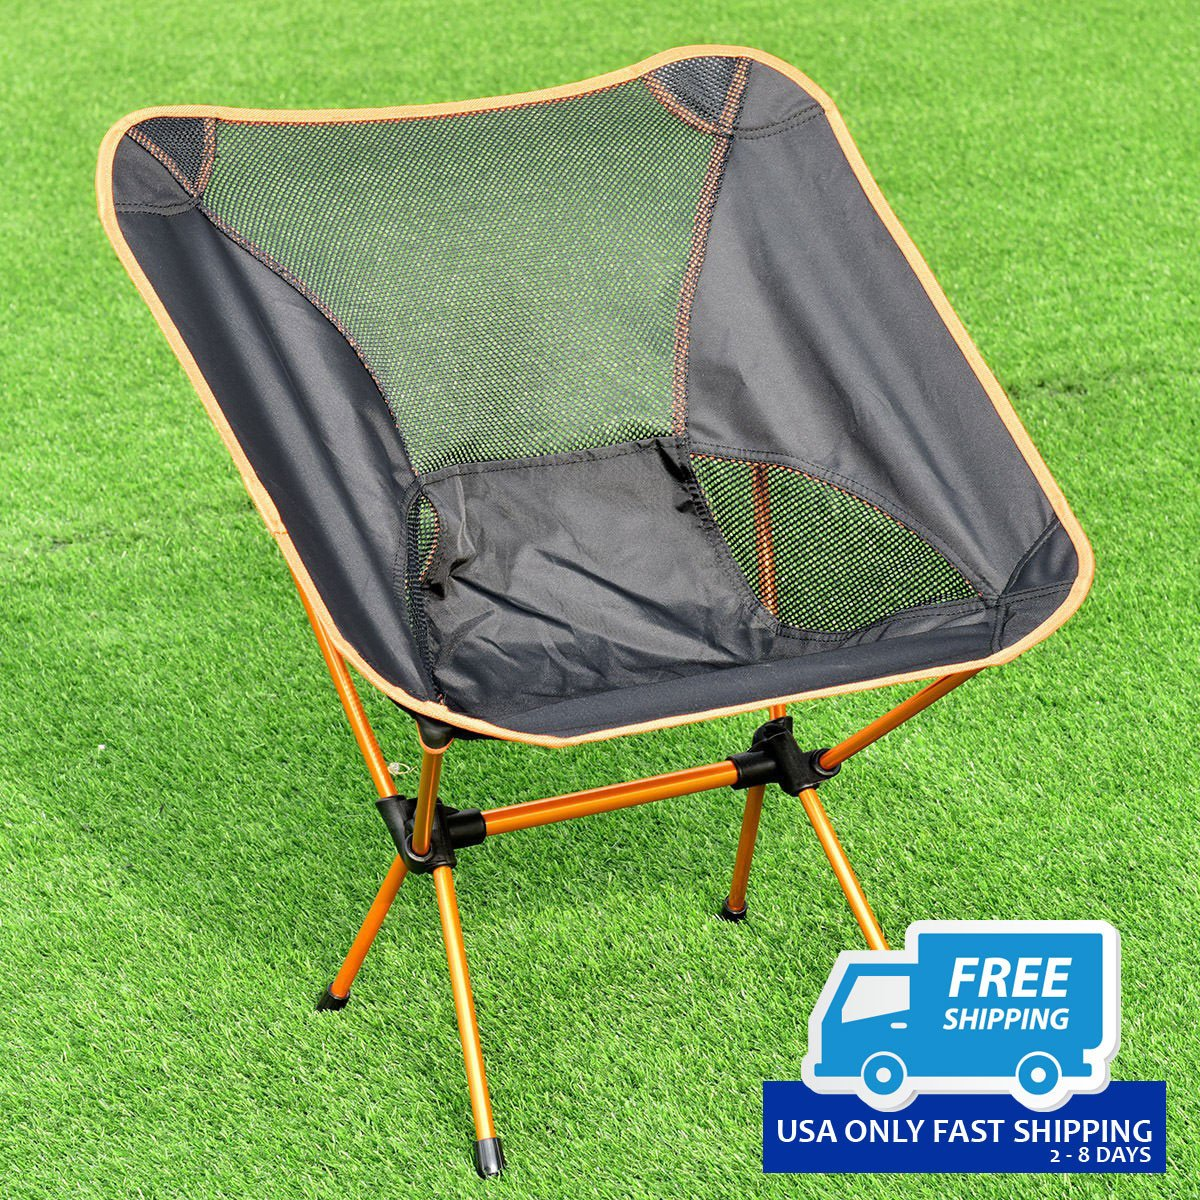 Groovy Aluminum Hiking Camping Chair Fishing Seat Stool Outdoor Folding Portable W Bag Cjindustries Chair Design For Home Cjindustriesco